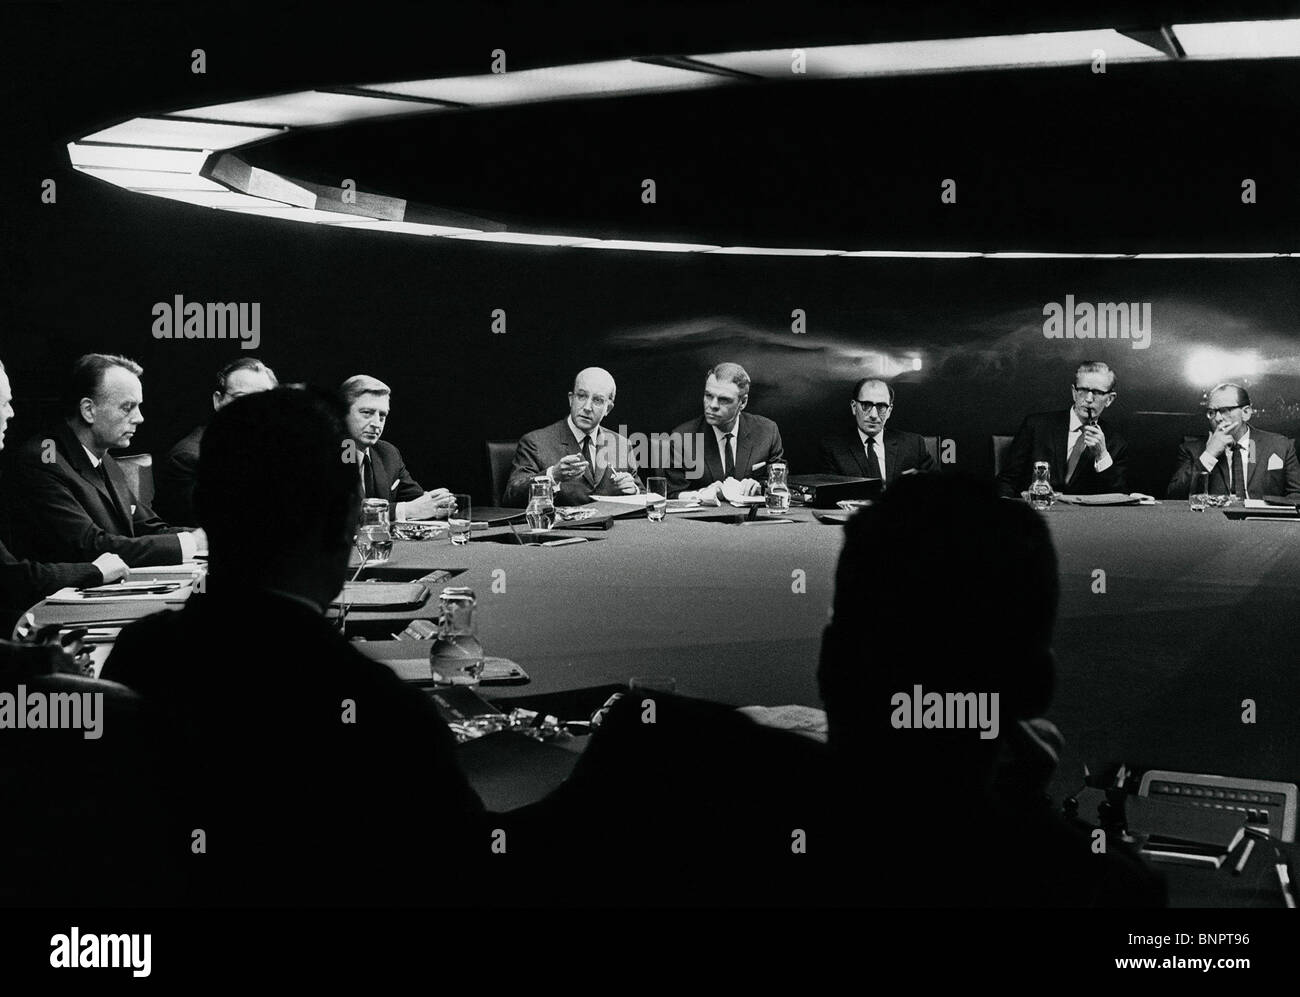 POLITICAL CONFERENCE SCENE DR. STRANGELOVE: HOW I LEARNED TO STOP WORRYING AND LOVE THE BOMB (1964) - Stock Image